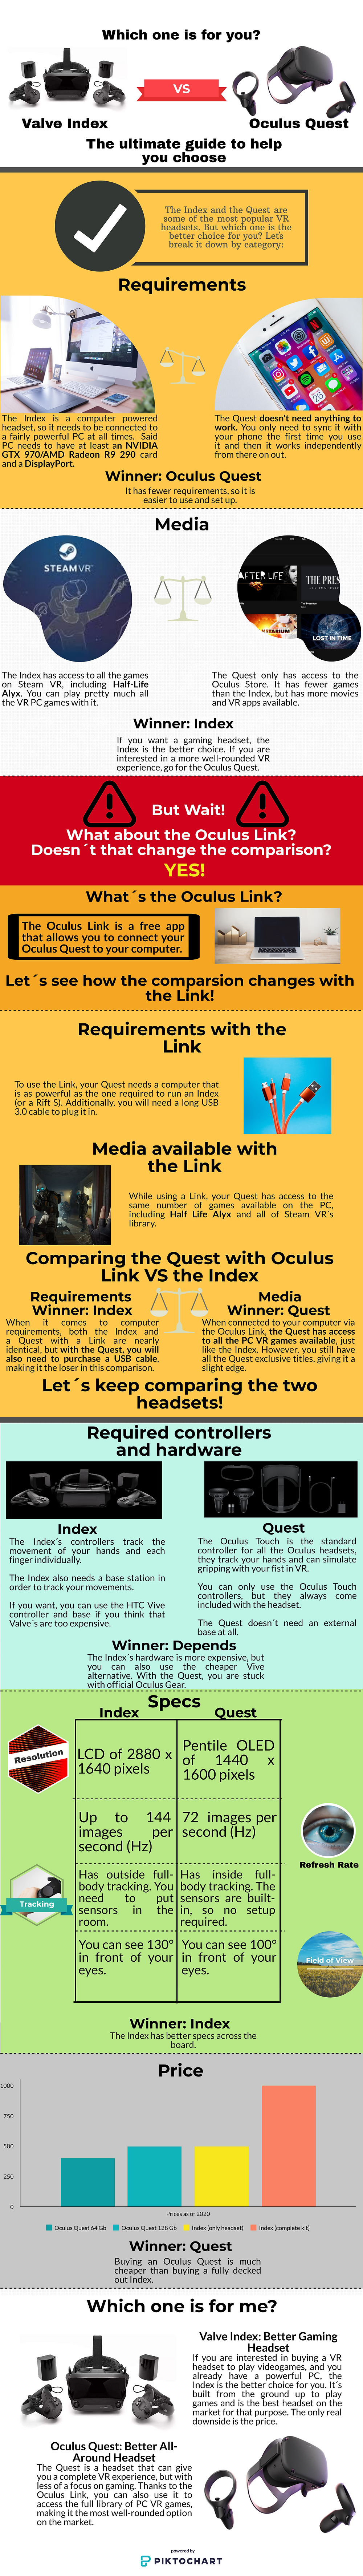 An infographic comparing the Oculus Quest and Valve Index VR headset. It analyses their price, specs, requirement, hardware, and available media. With and without the Oculus Link.